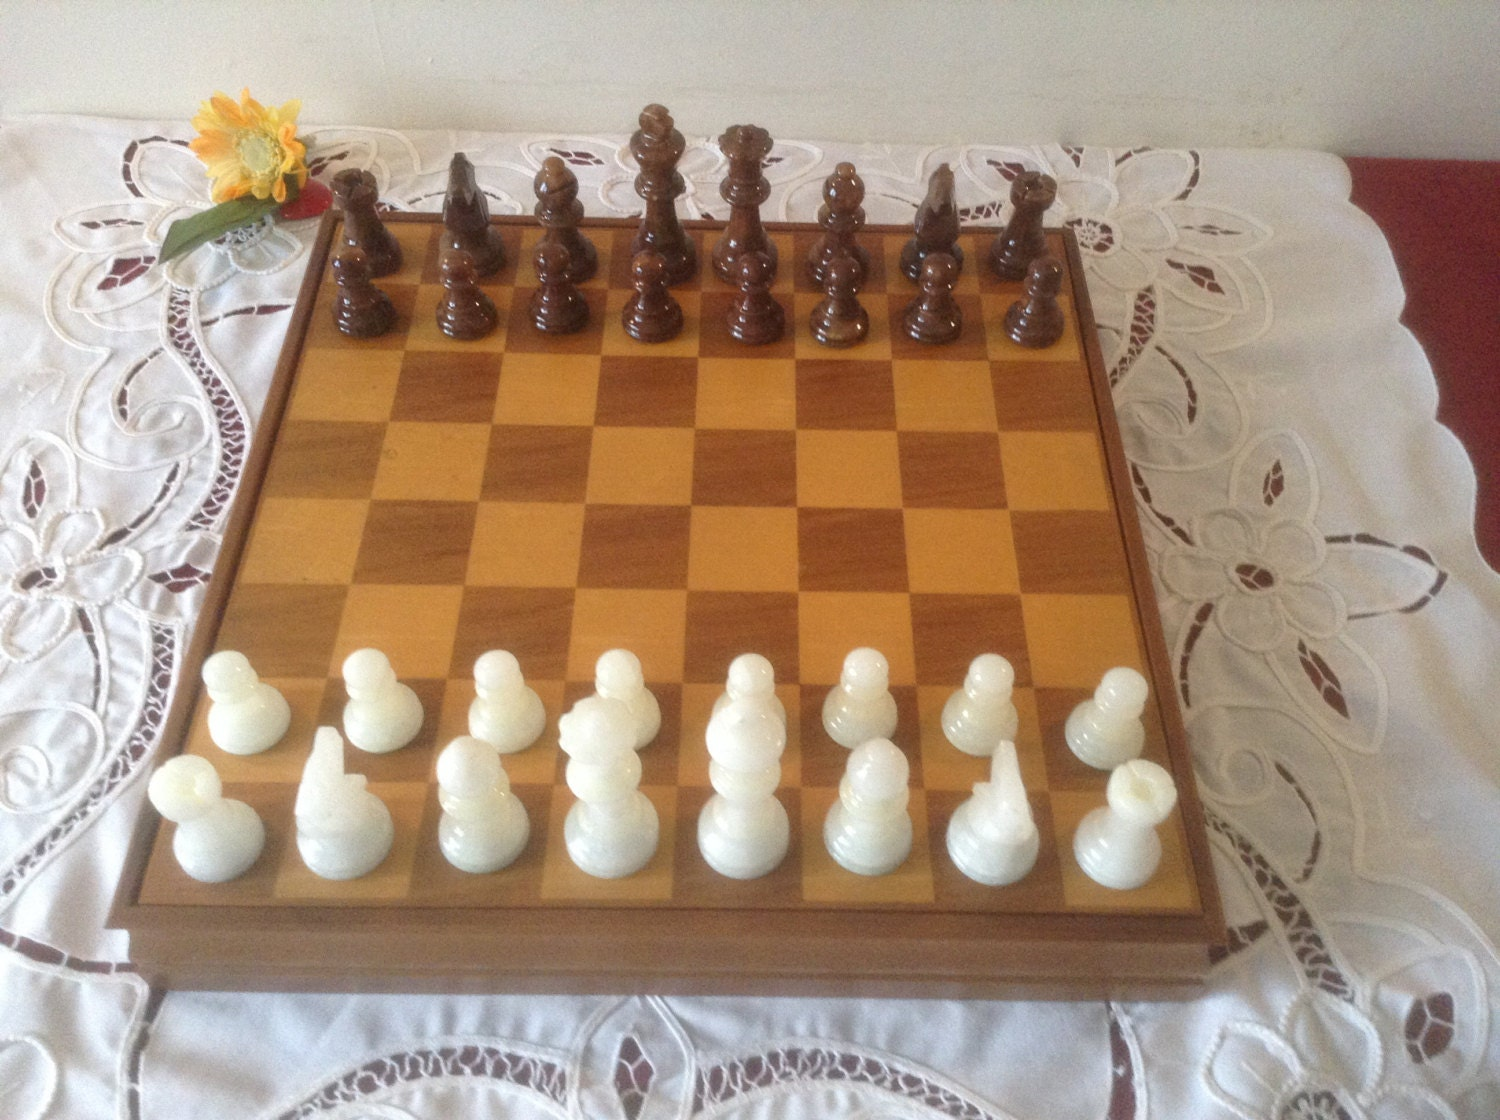 Wonderful quality chess set ornate item beautiful intricate - Ornate chess sets ...